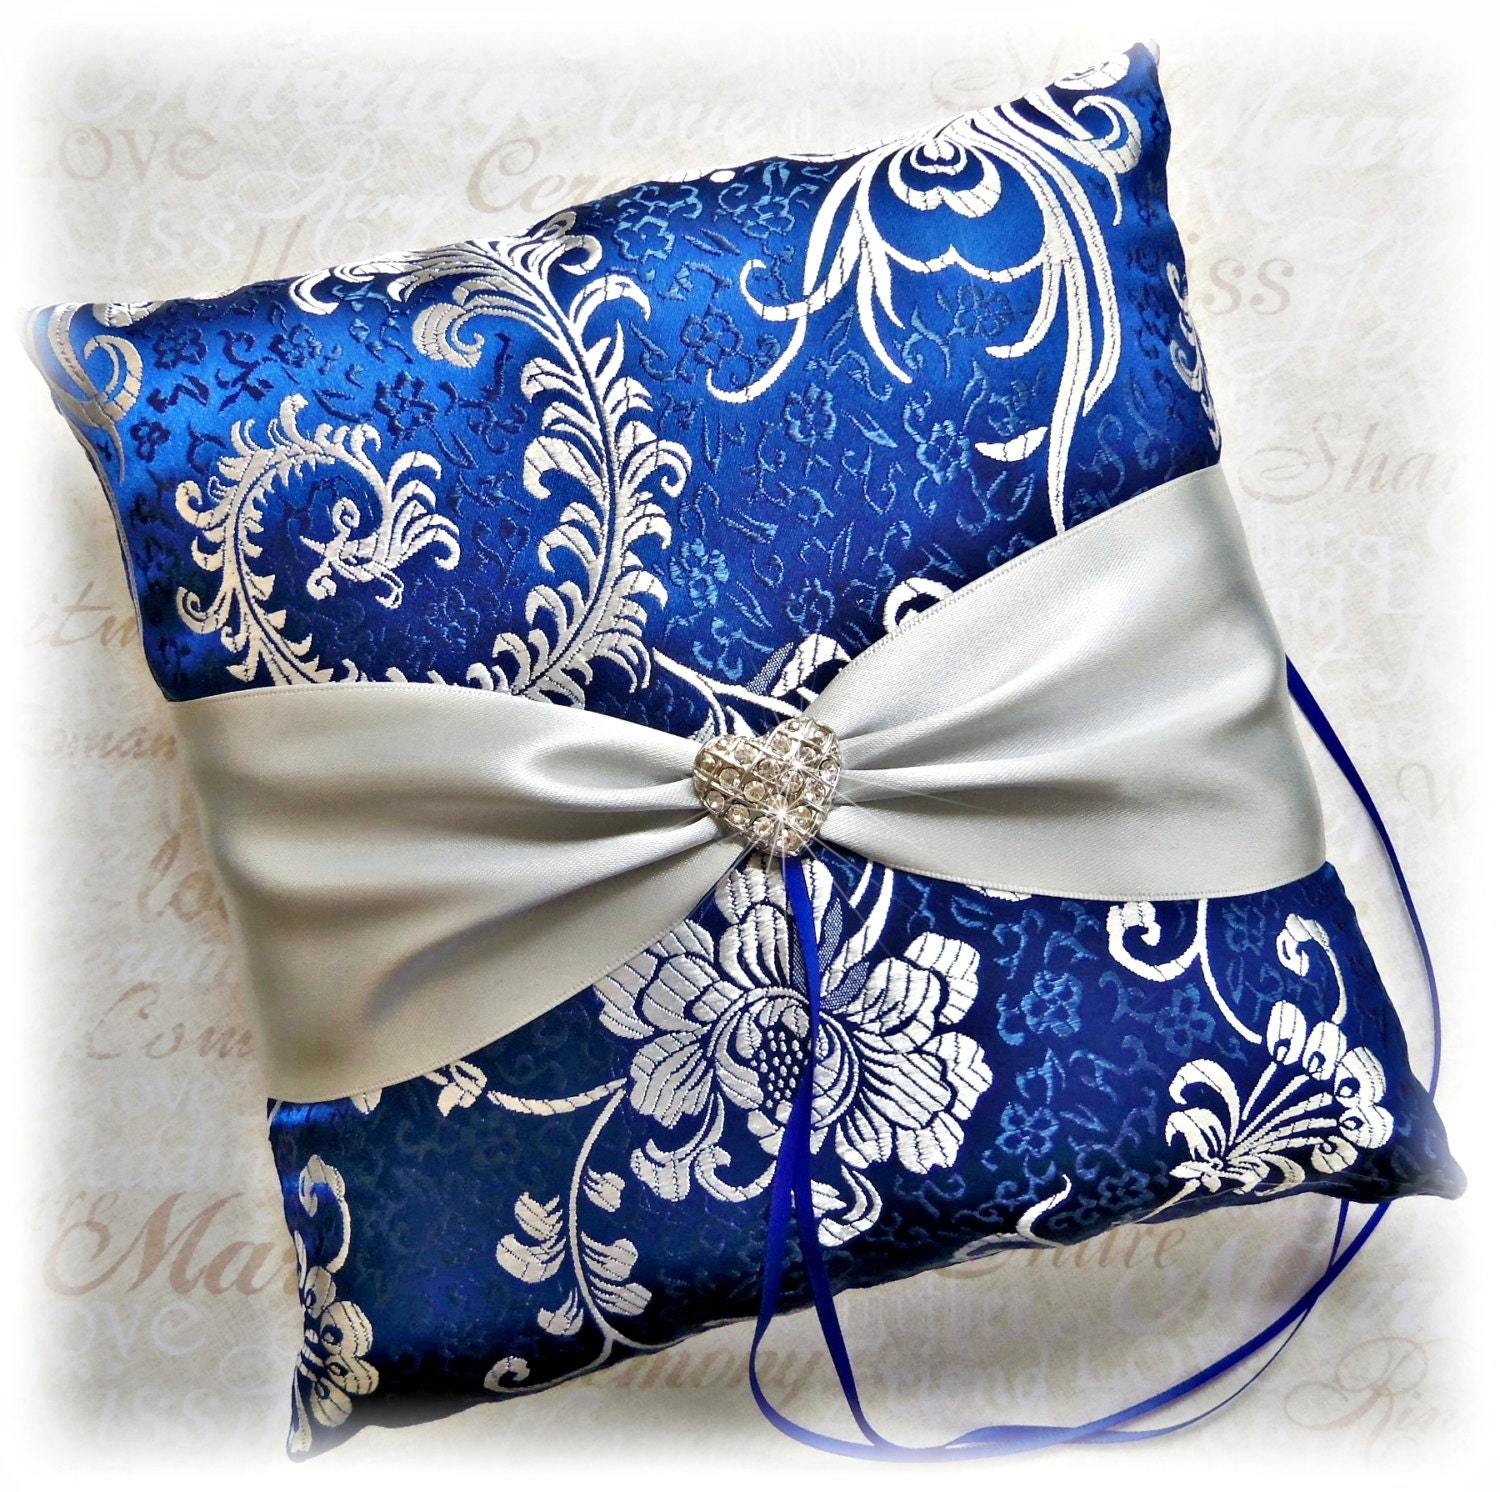 royal blue and silver wedding pillow blue and grey by all4brides. Black Bedroom Furniture Sets. Home Design Ideas